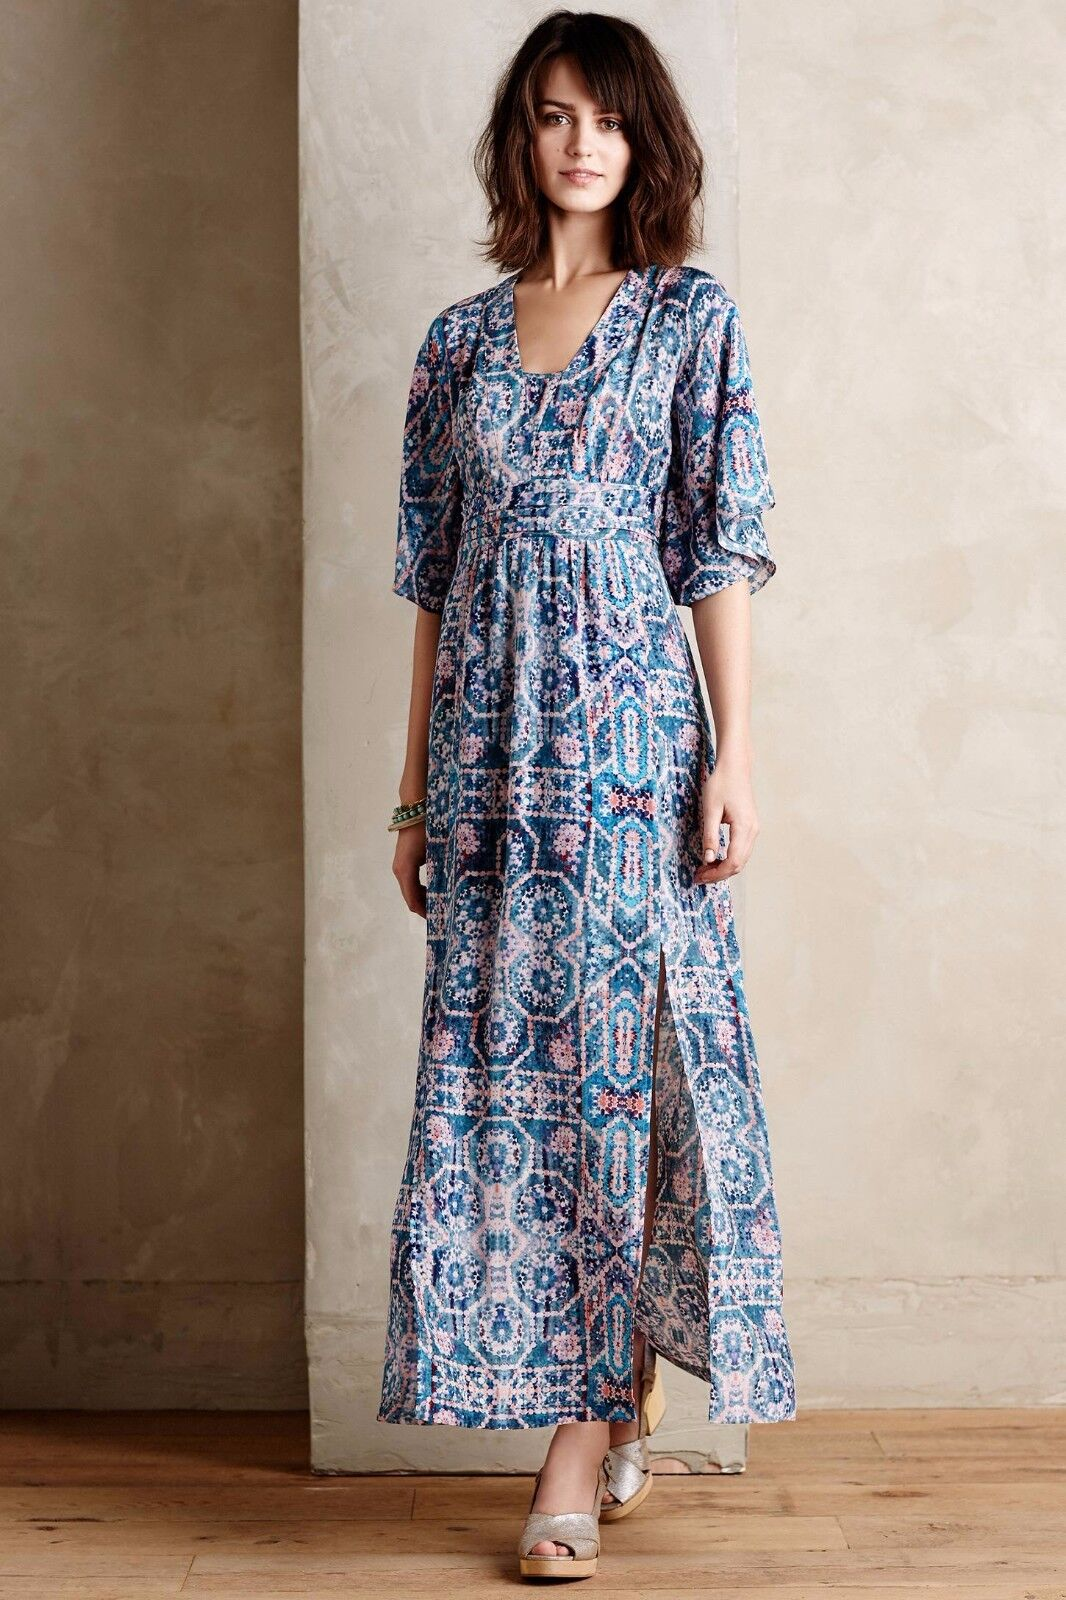 NEW Anthropologie Silk Tilework Maxi Dress by Maeve, Größe 0, 2, 4, Unique light